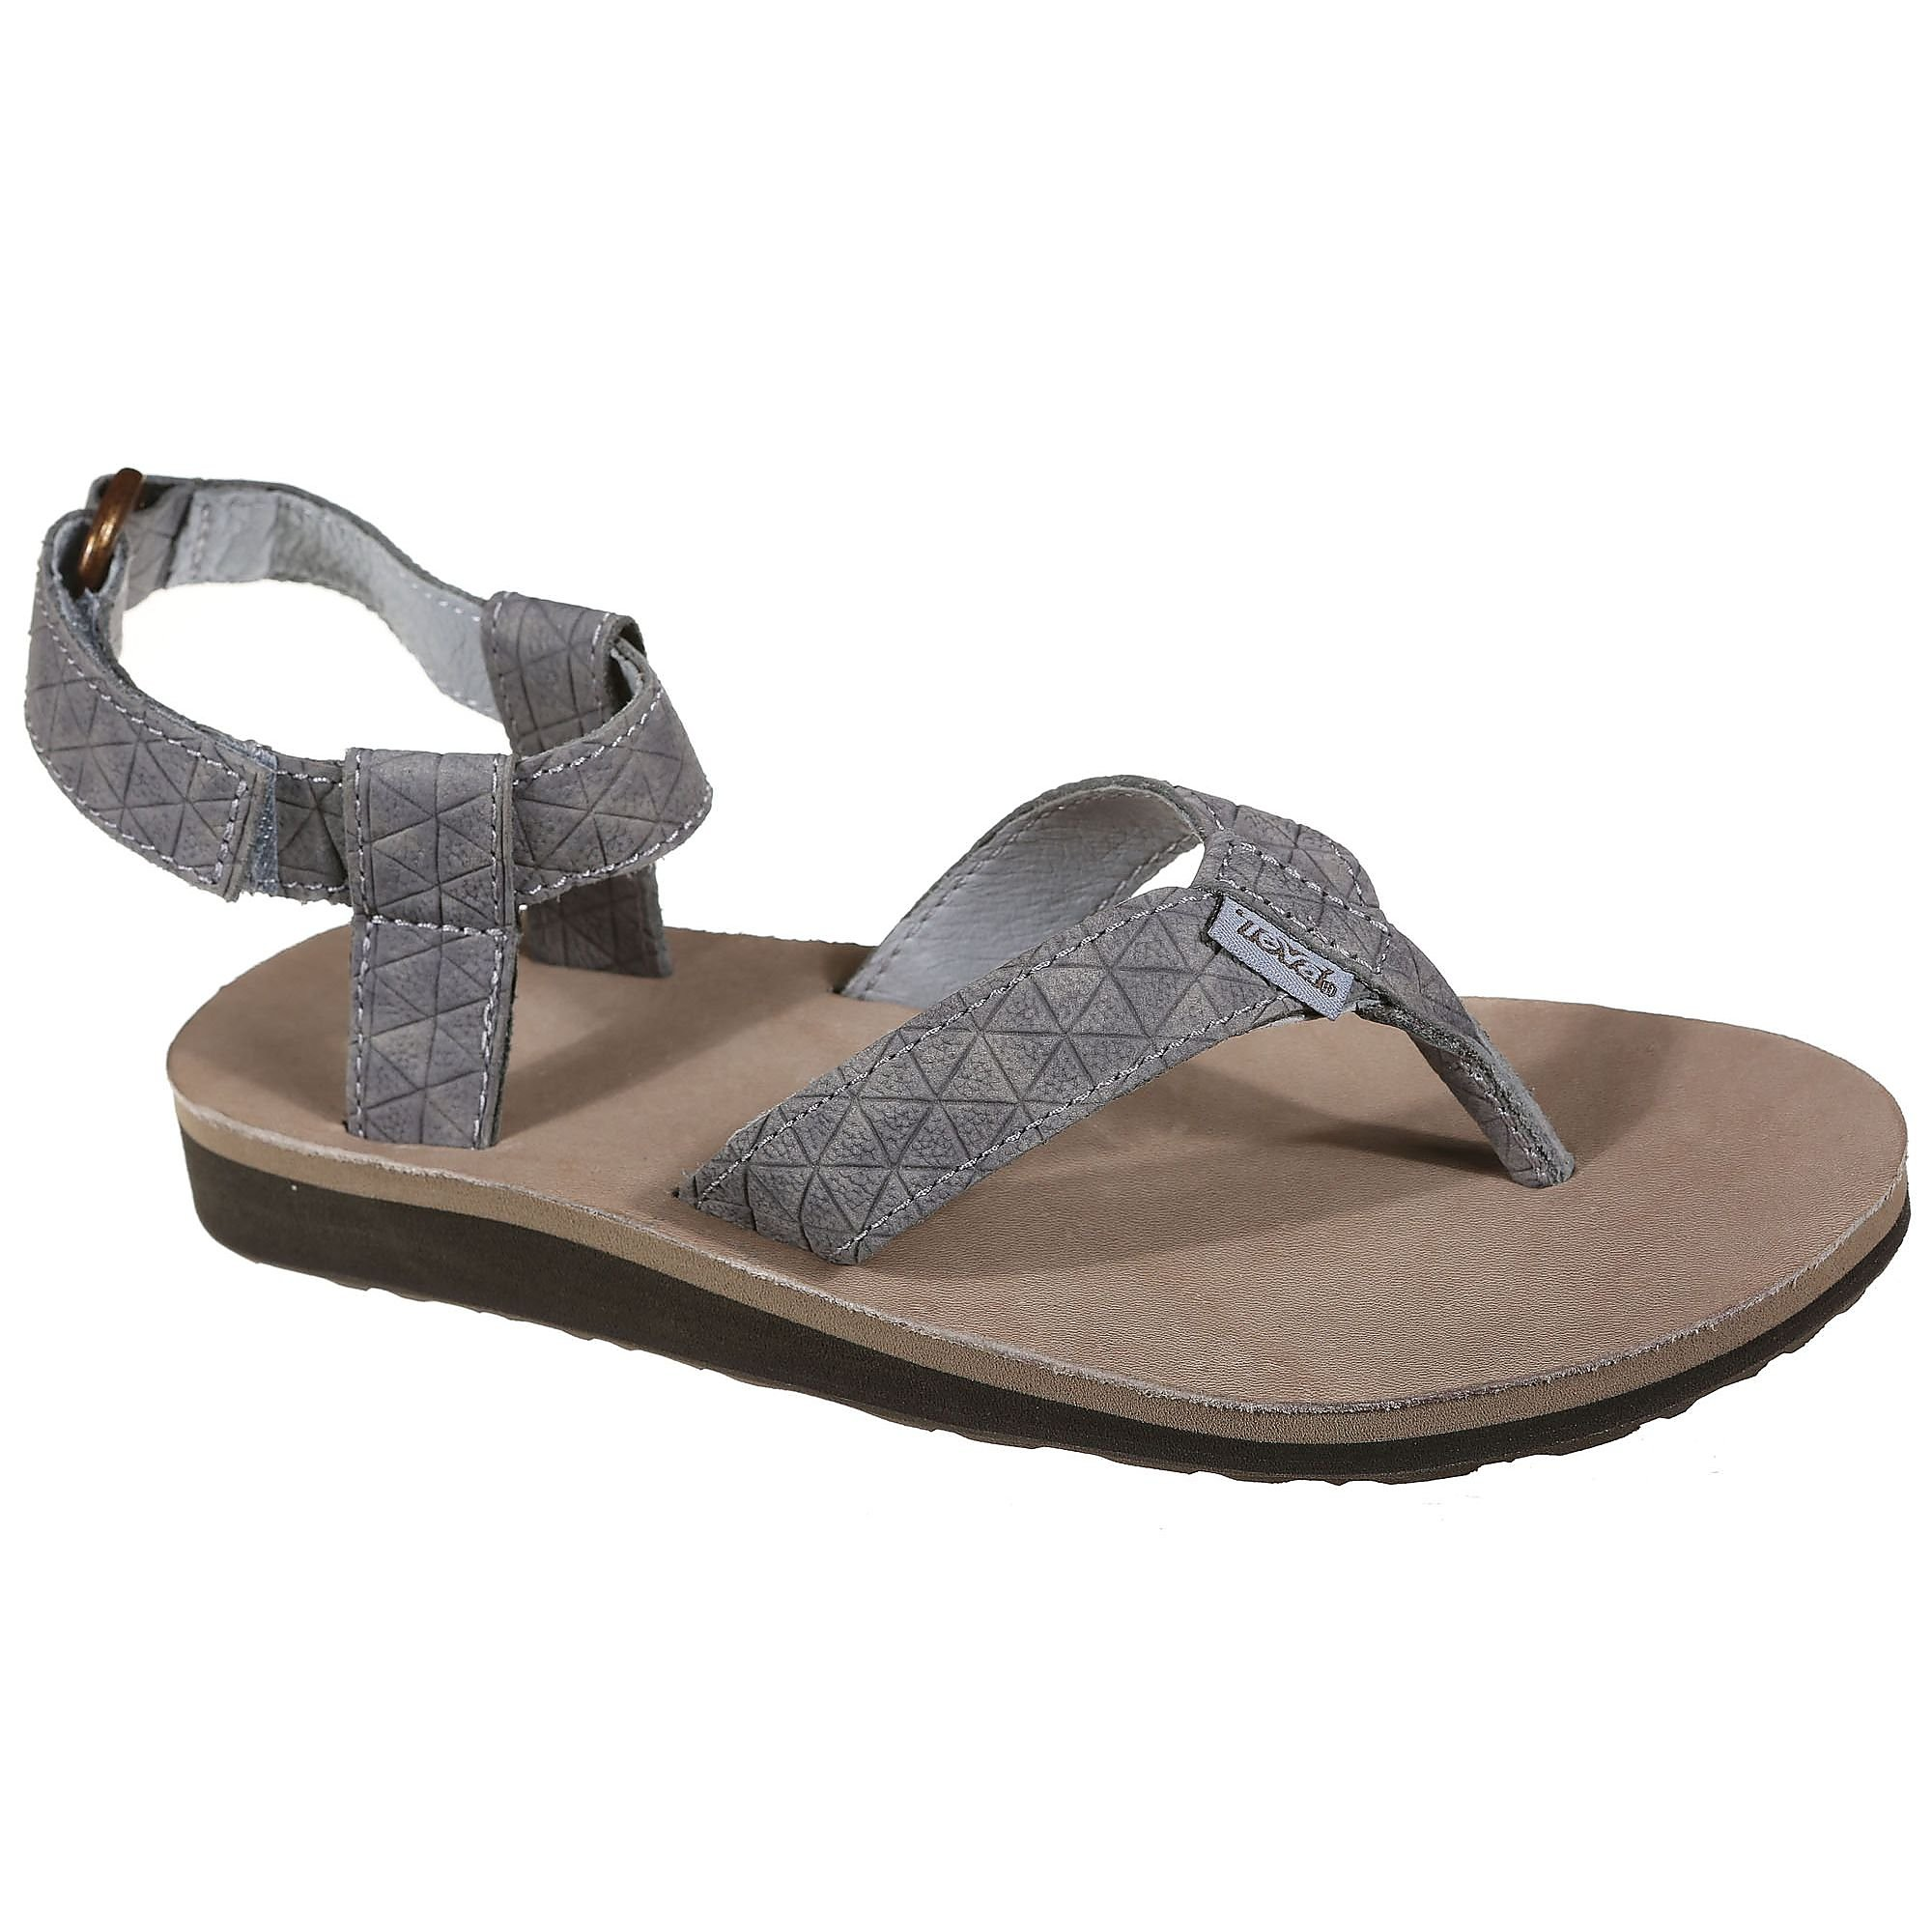 TEVA ORIGINAL SANDAL DIAMOND